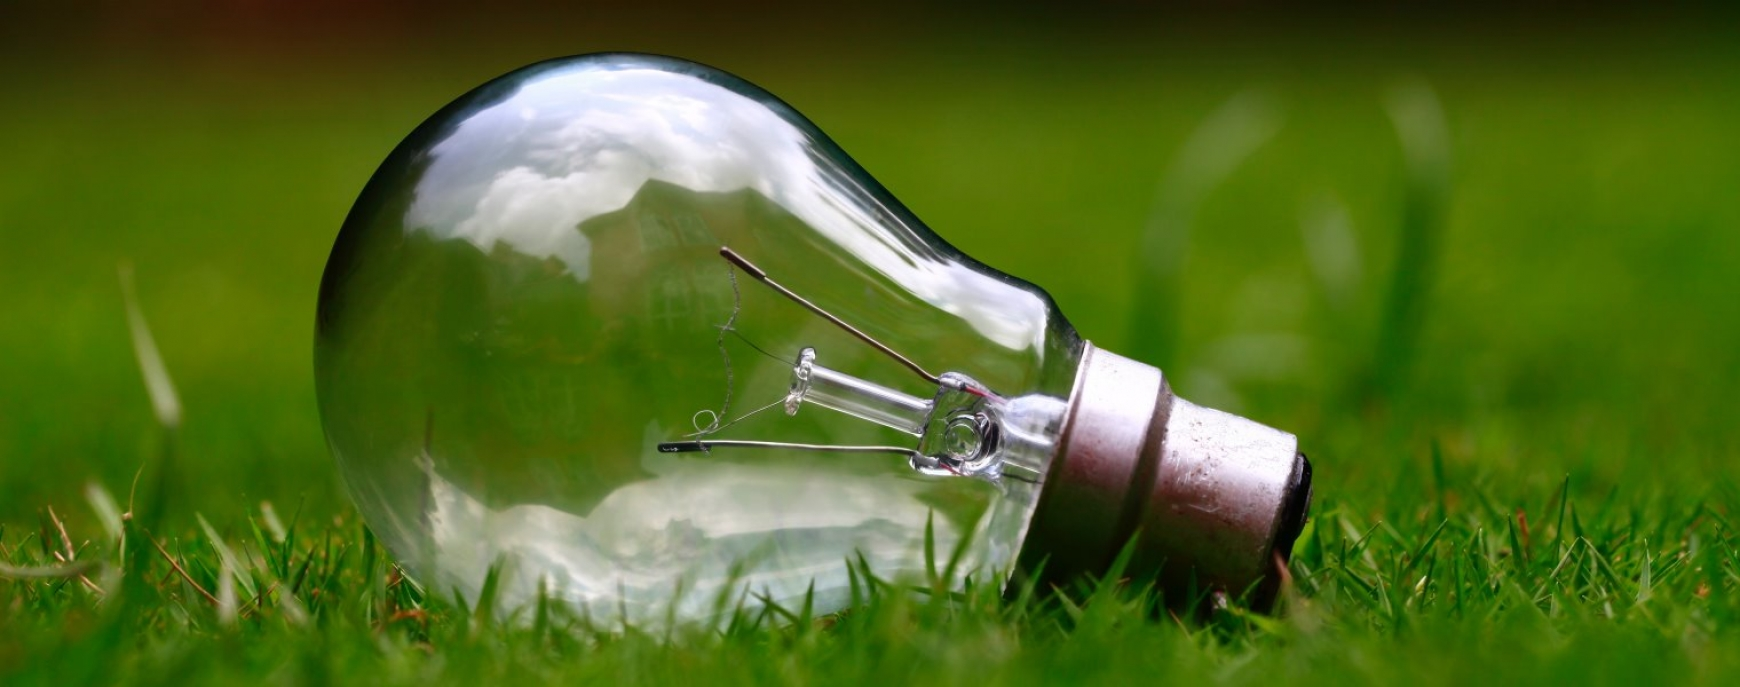 Lightbulb lying in the grass